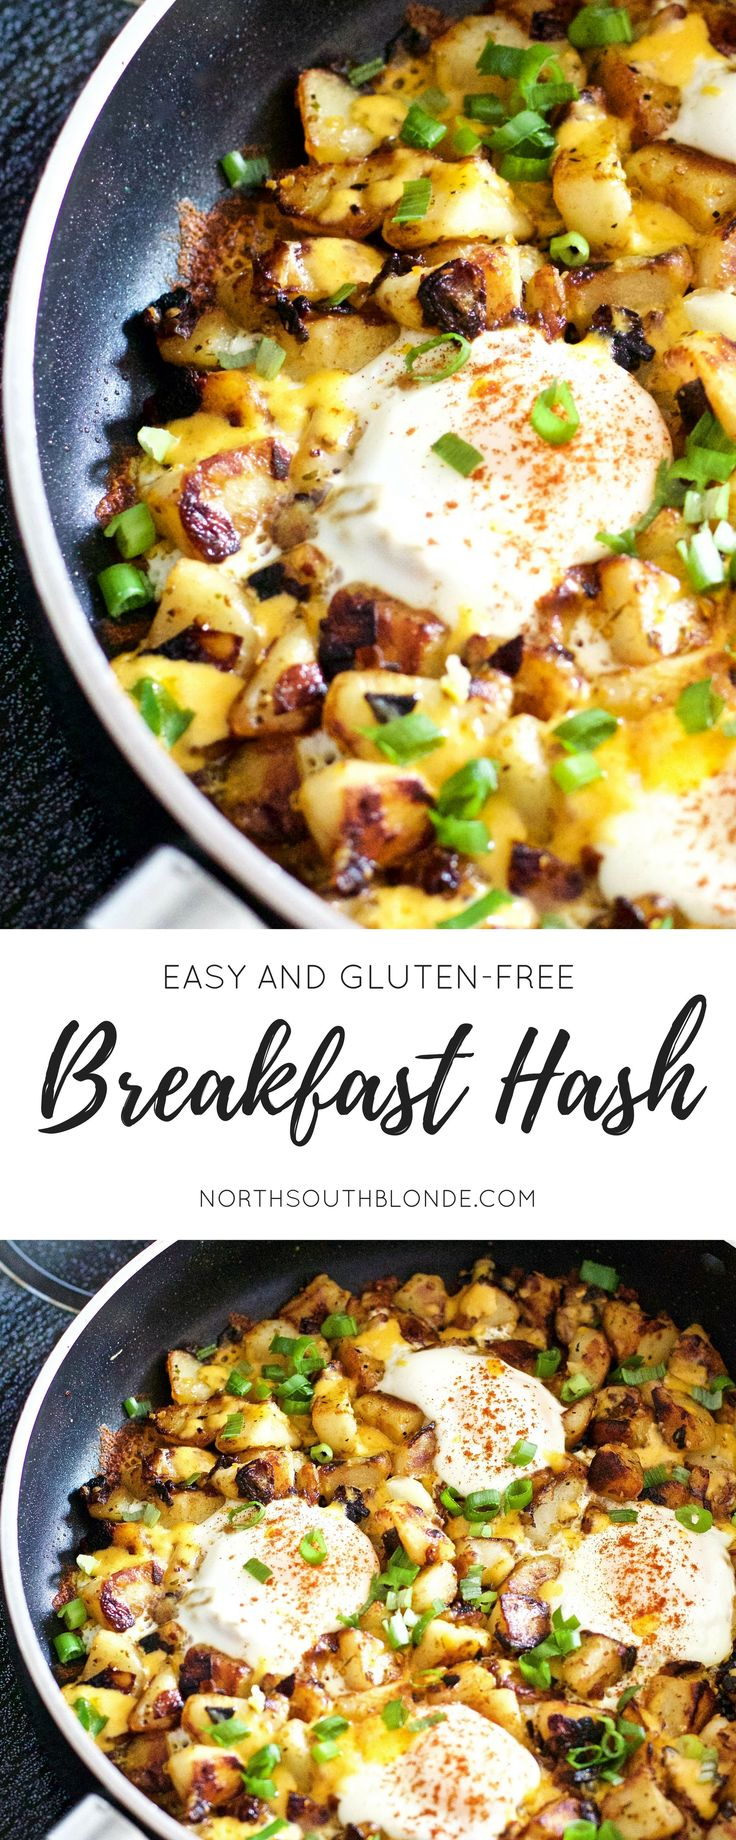 Gluten-Free Breakfast Hash These fluffy cinnamon r…